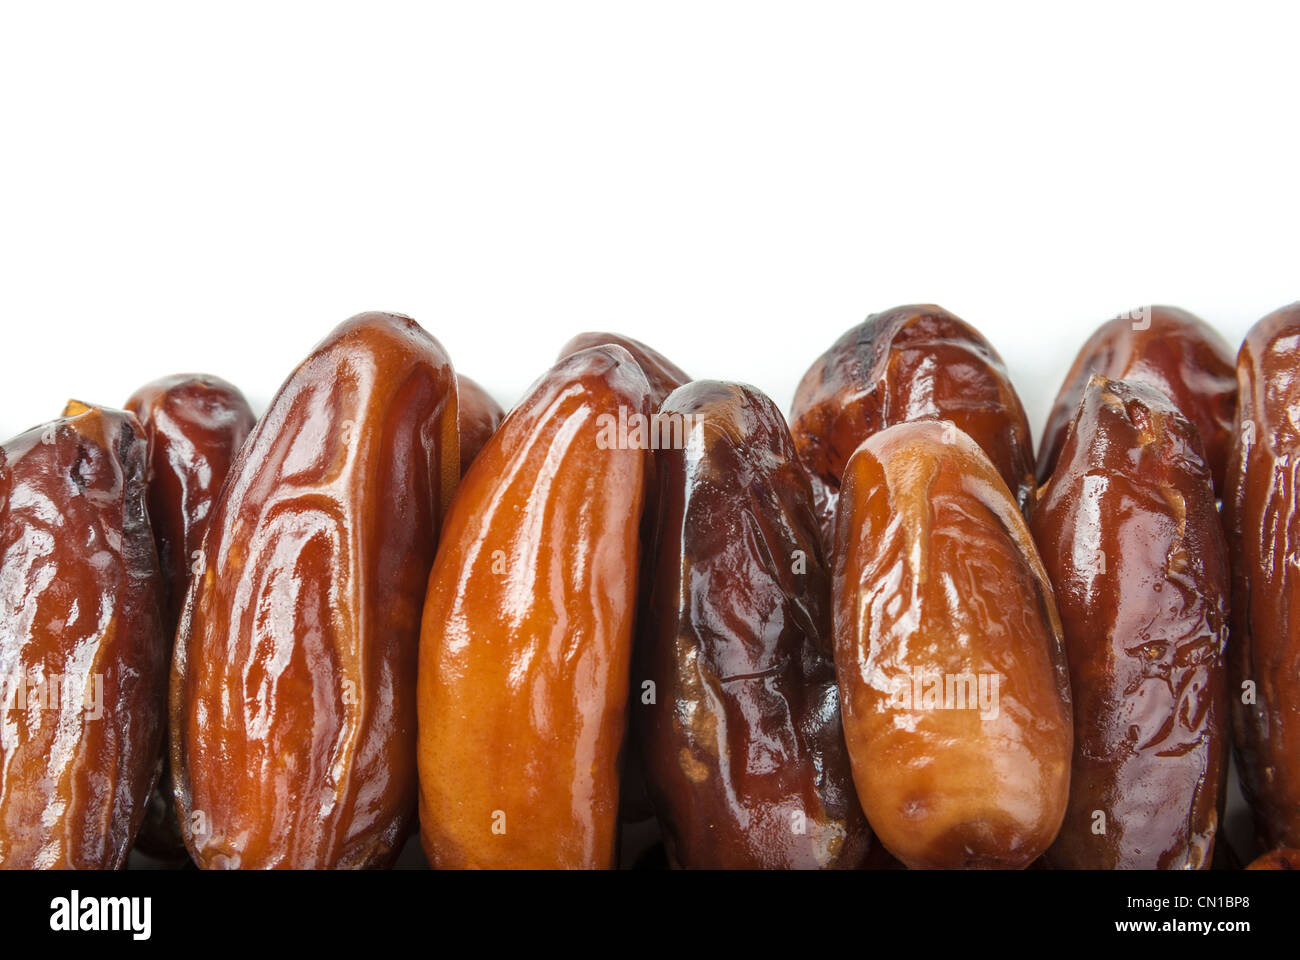 A stack of delicious date fruits on a white background - Stock Image